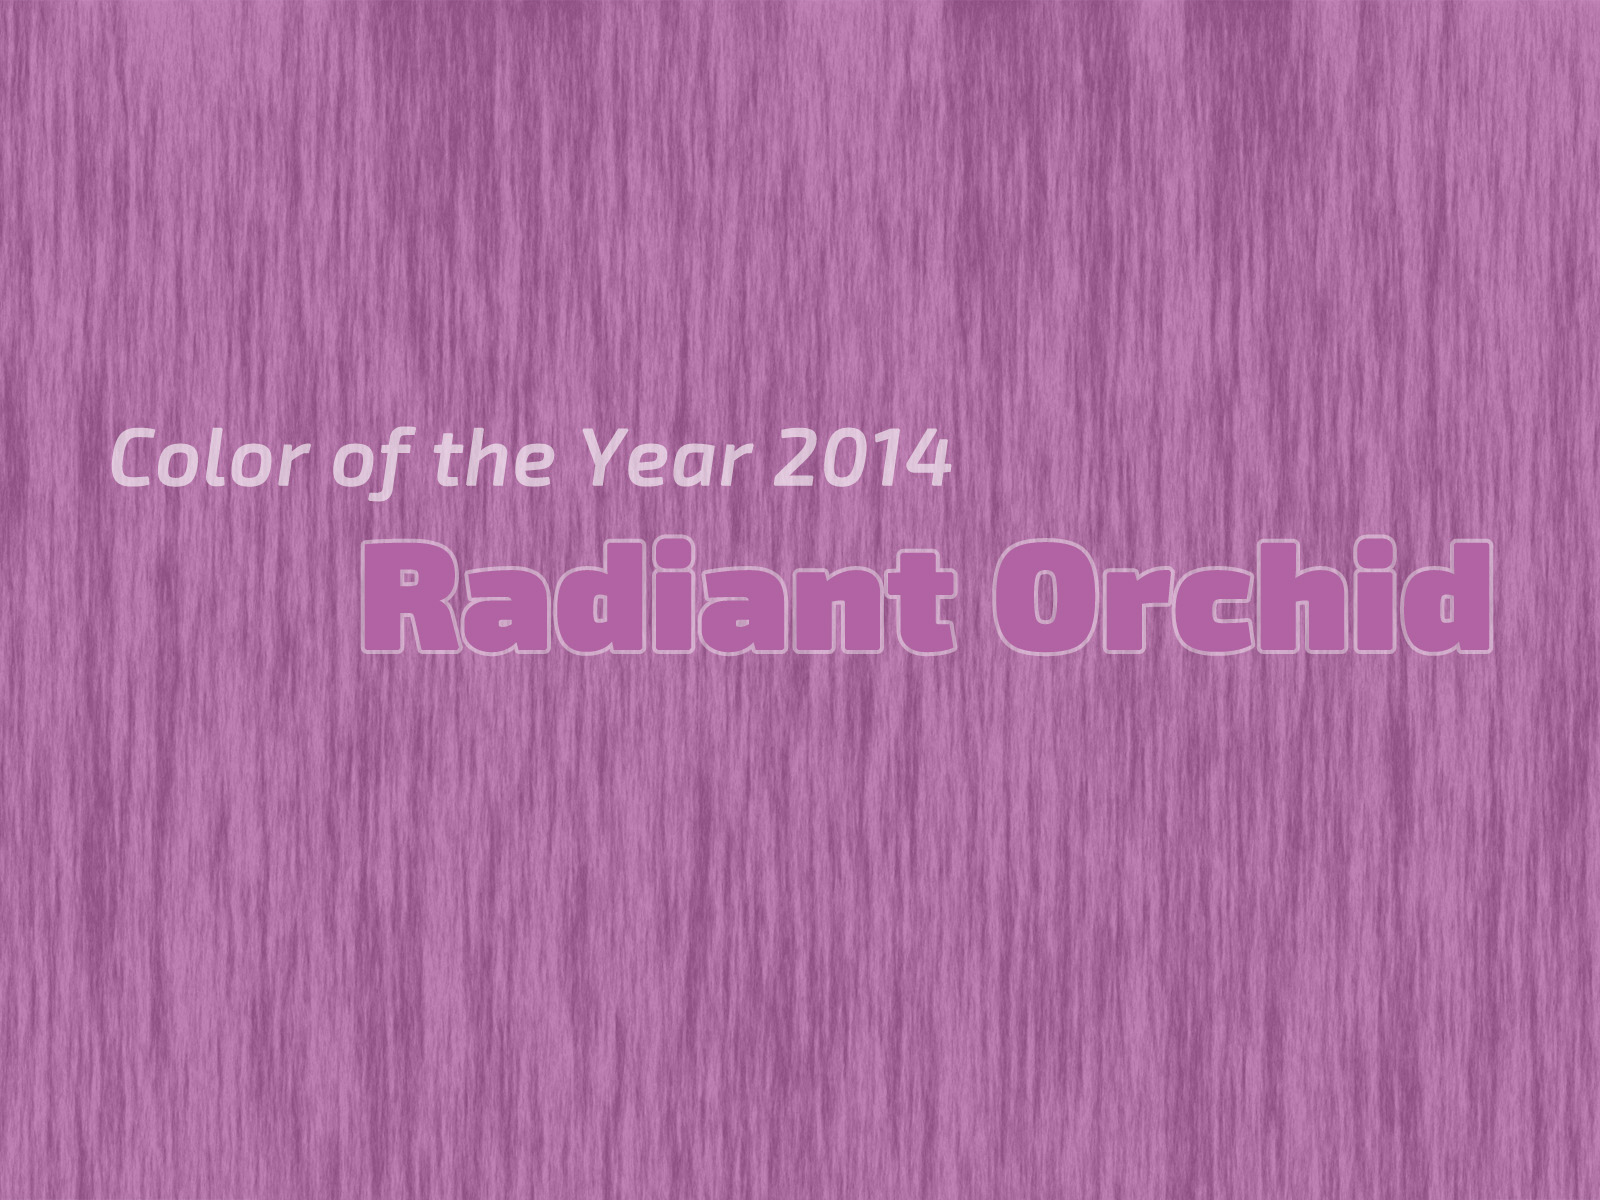 Color of the Year 2014 - Radiant Orchid